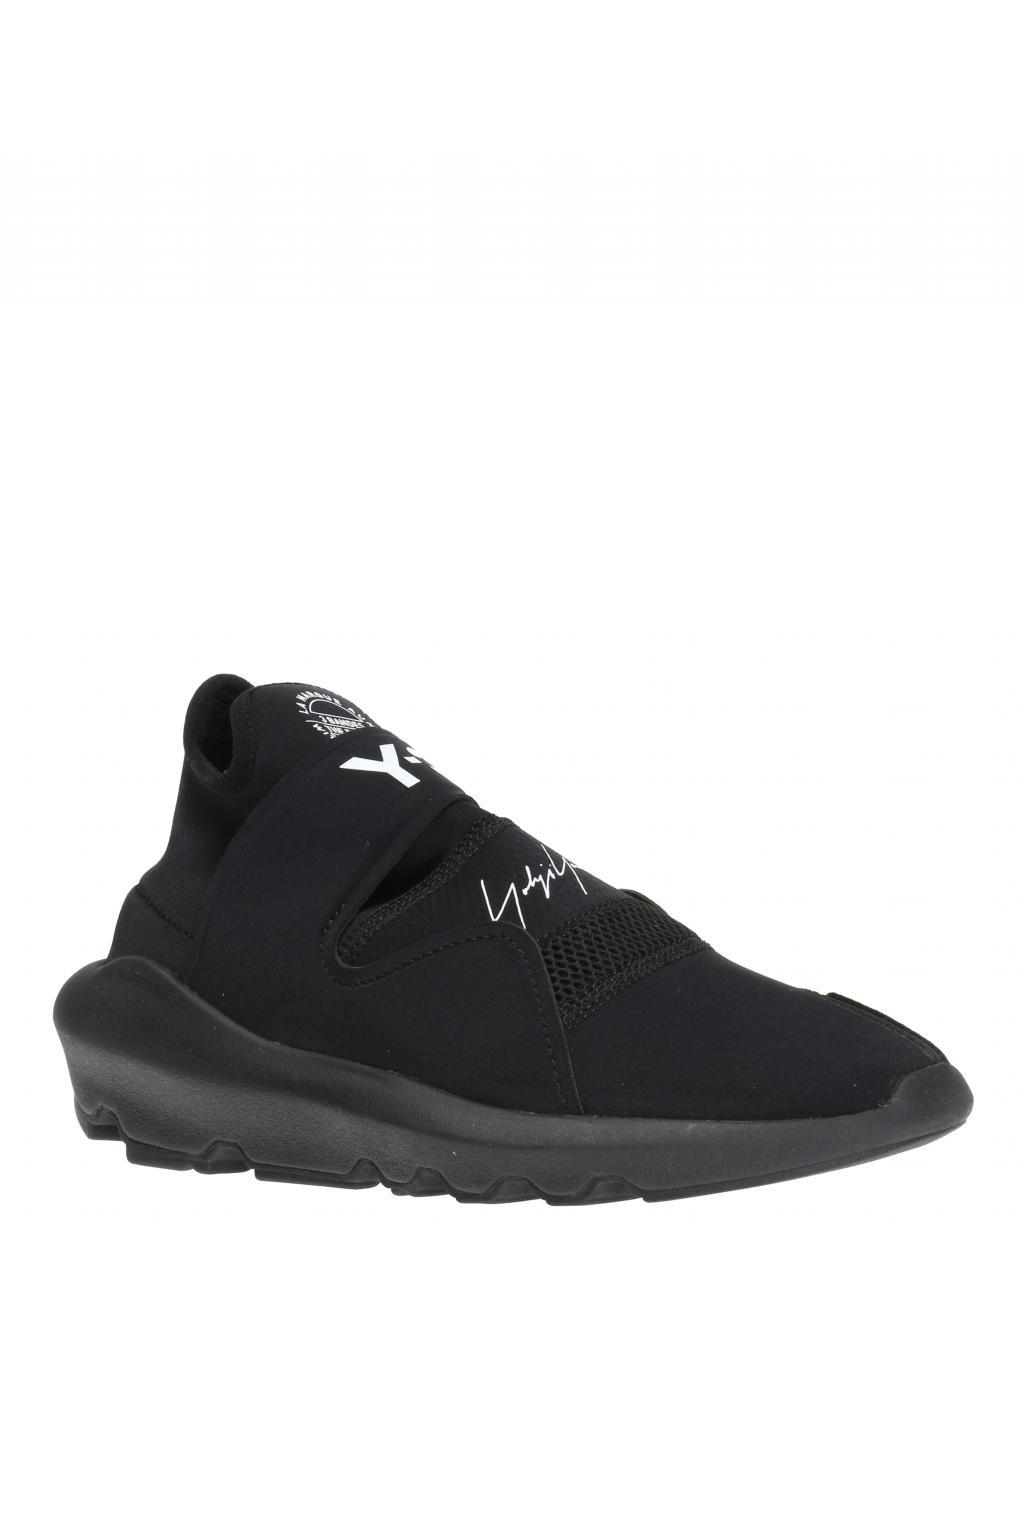 5669fb6cc37e Lyst - Y-3  suberou  Sneakers in Black for Men